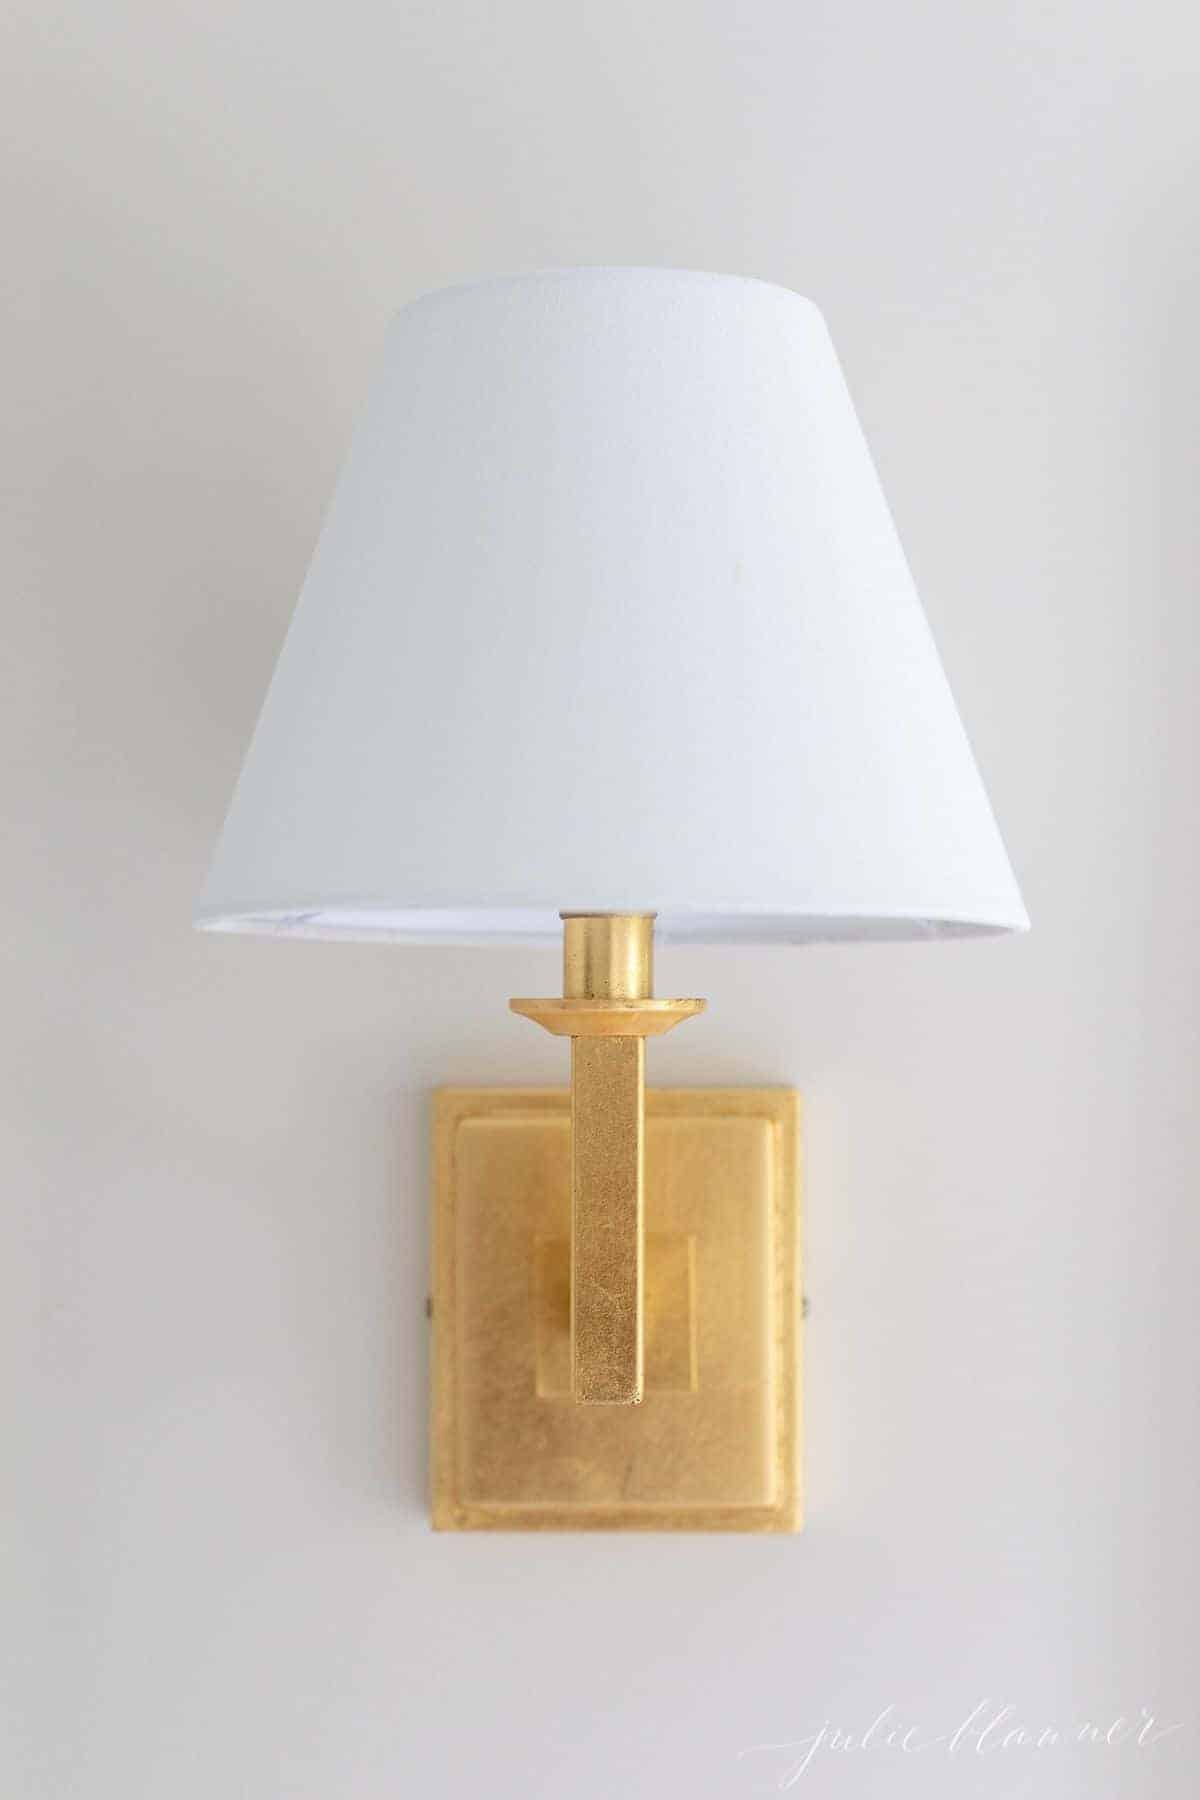 Close-up shot of a classic gold sconce with white shade.